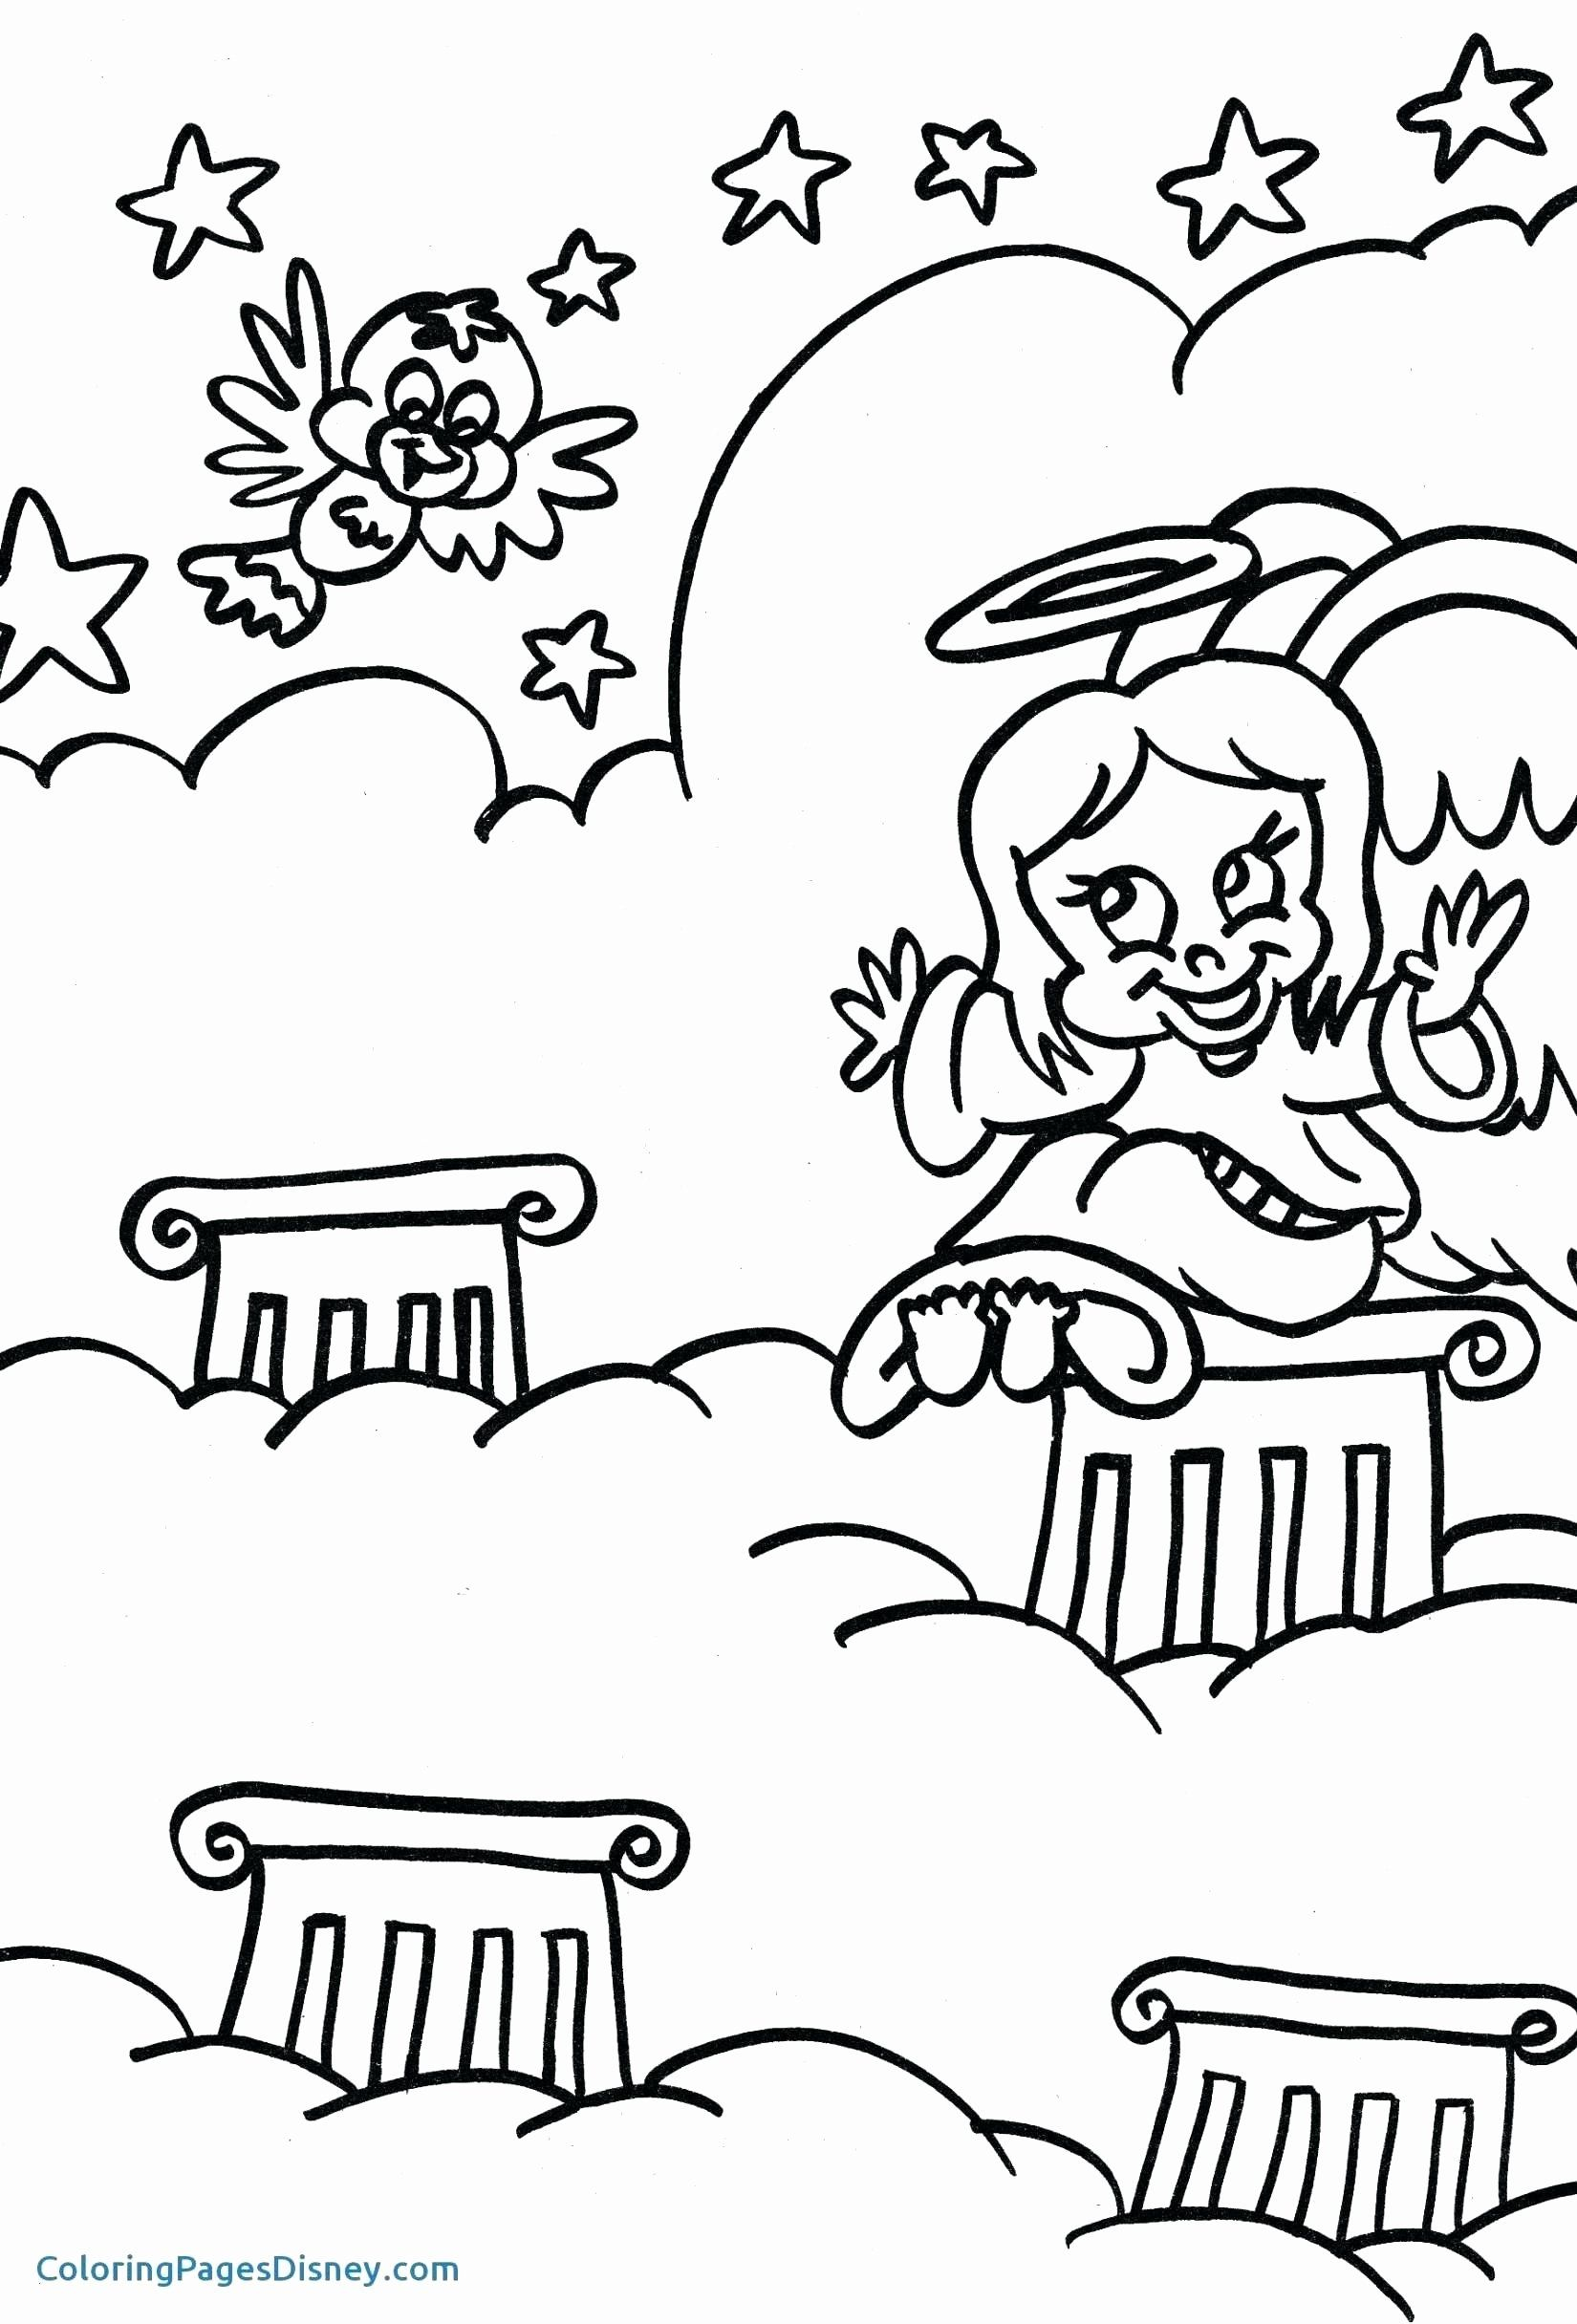 Texas Symbols Coloring Pages Awesome Texas Am Coloring